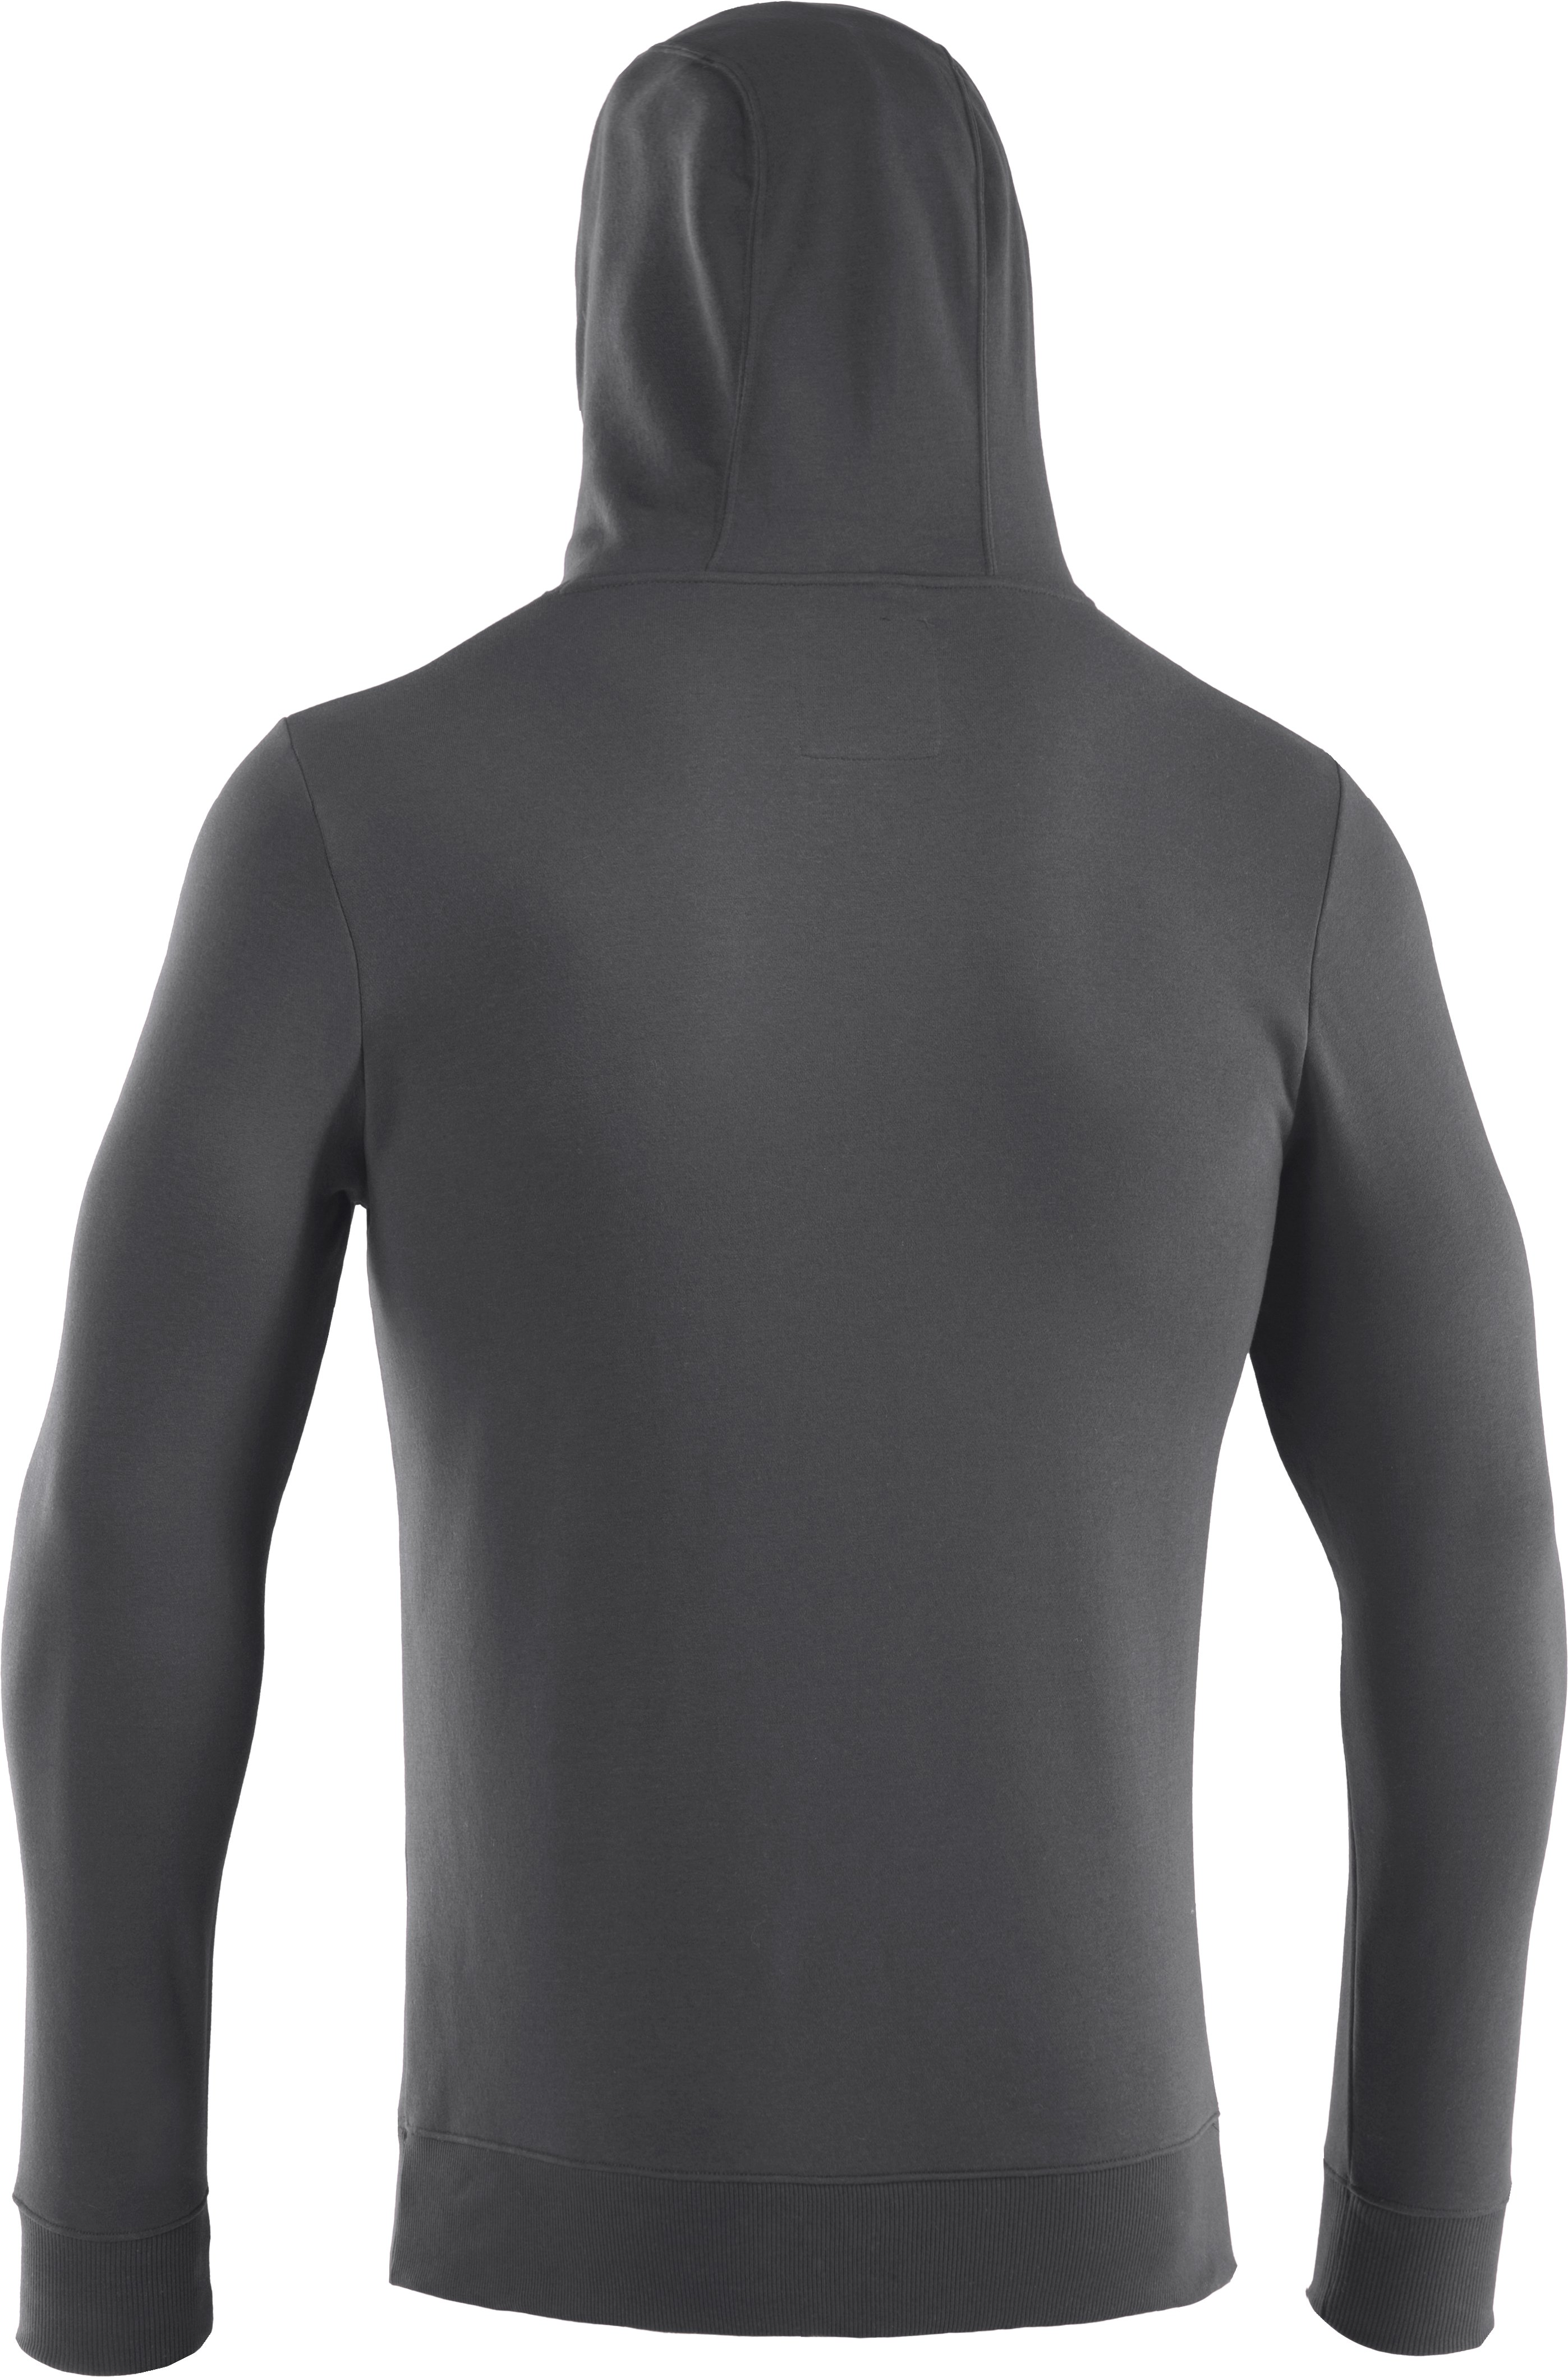 Men's Charged Cotton® Storm Battle Hoodie, Graphite